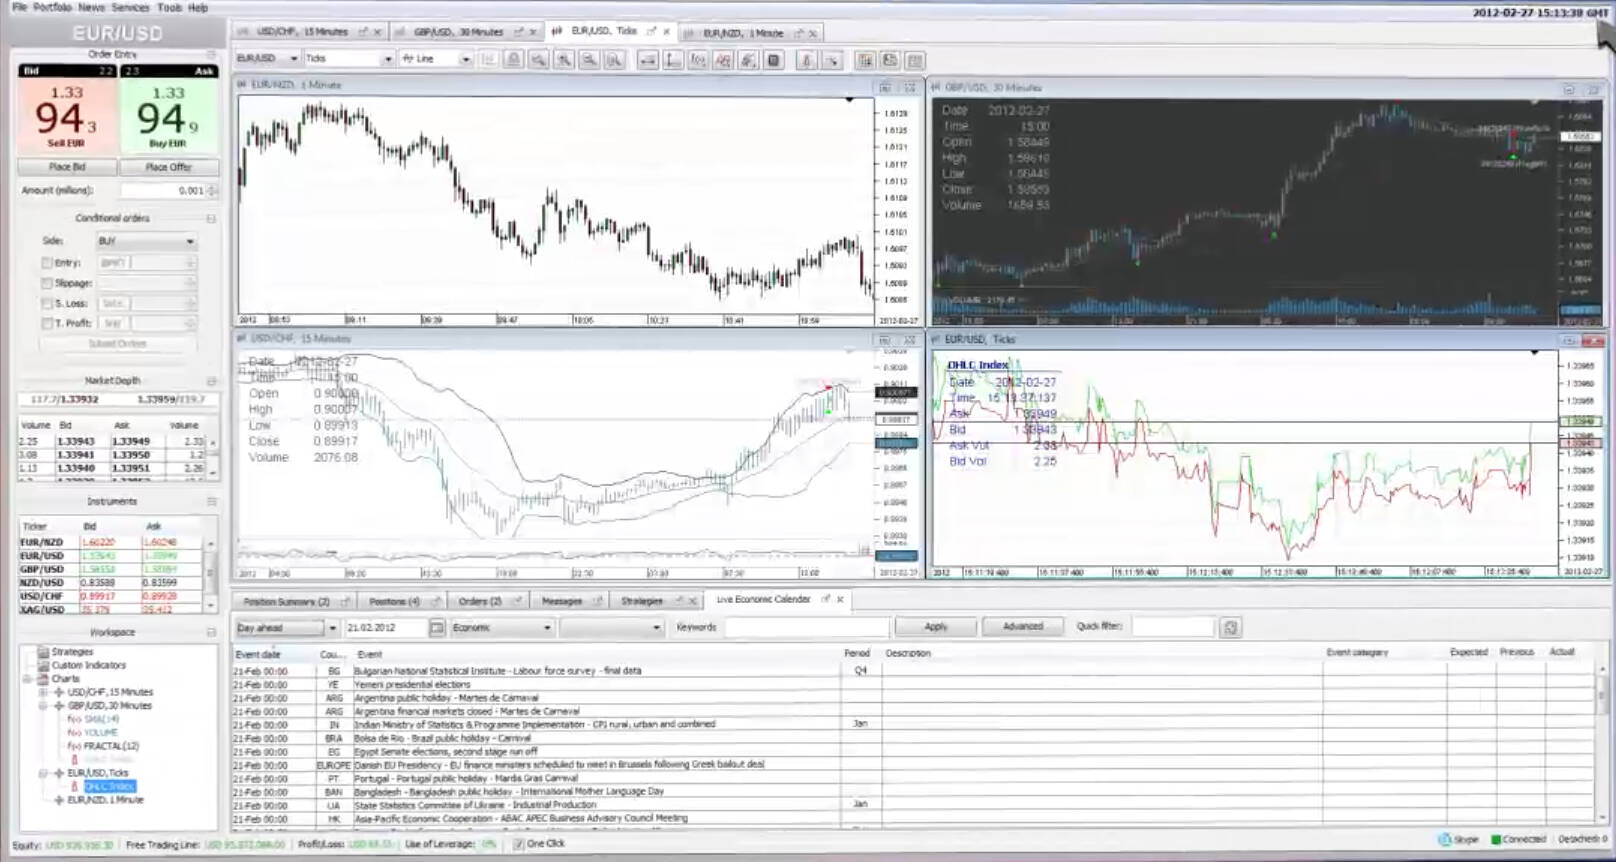 Dukascopy forex review